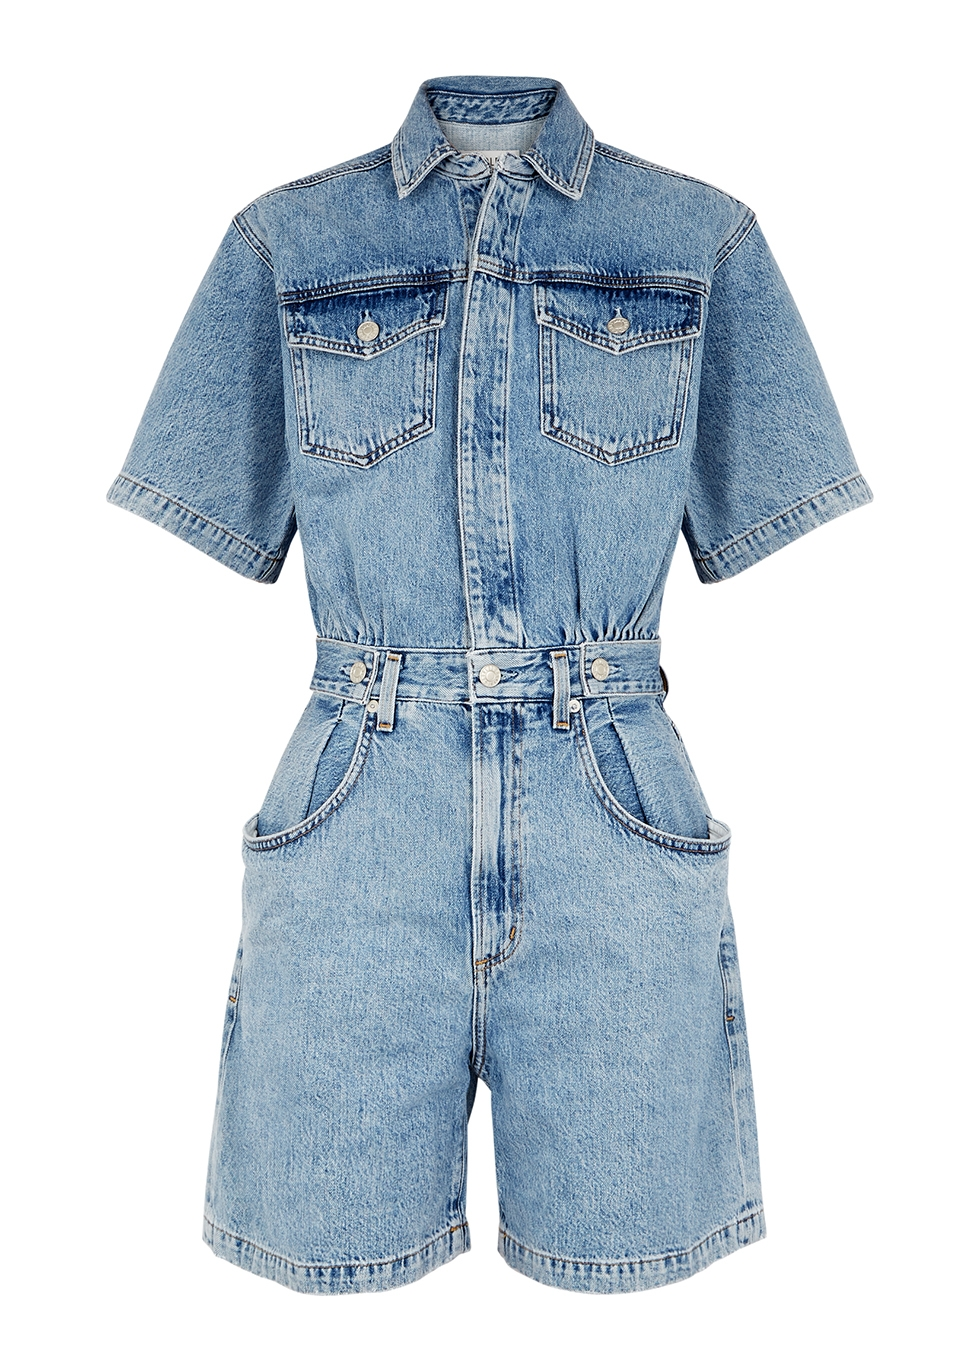 Zora blue denim playsuit